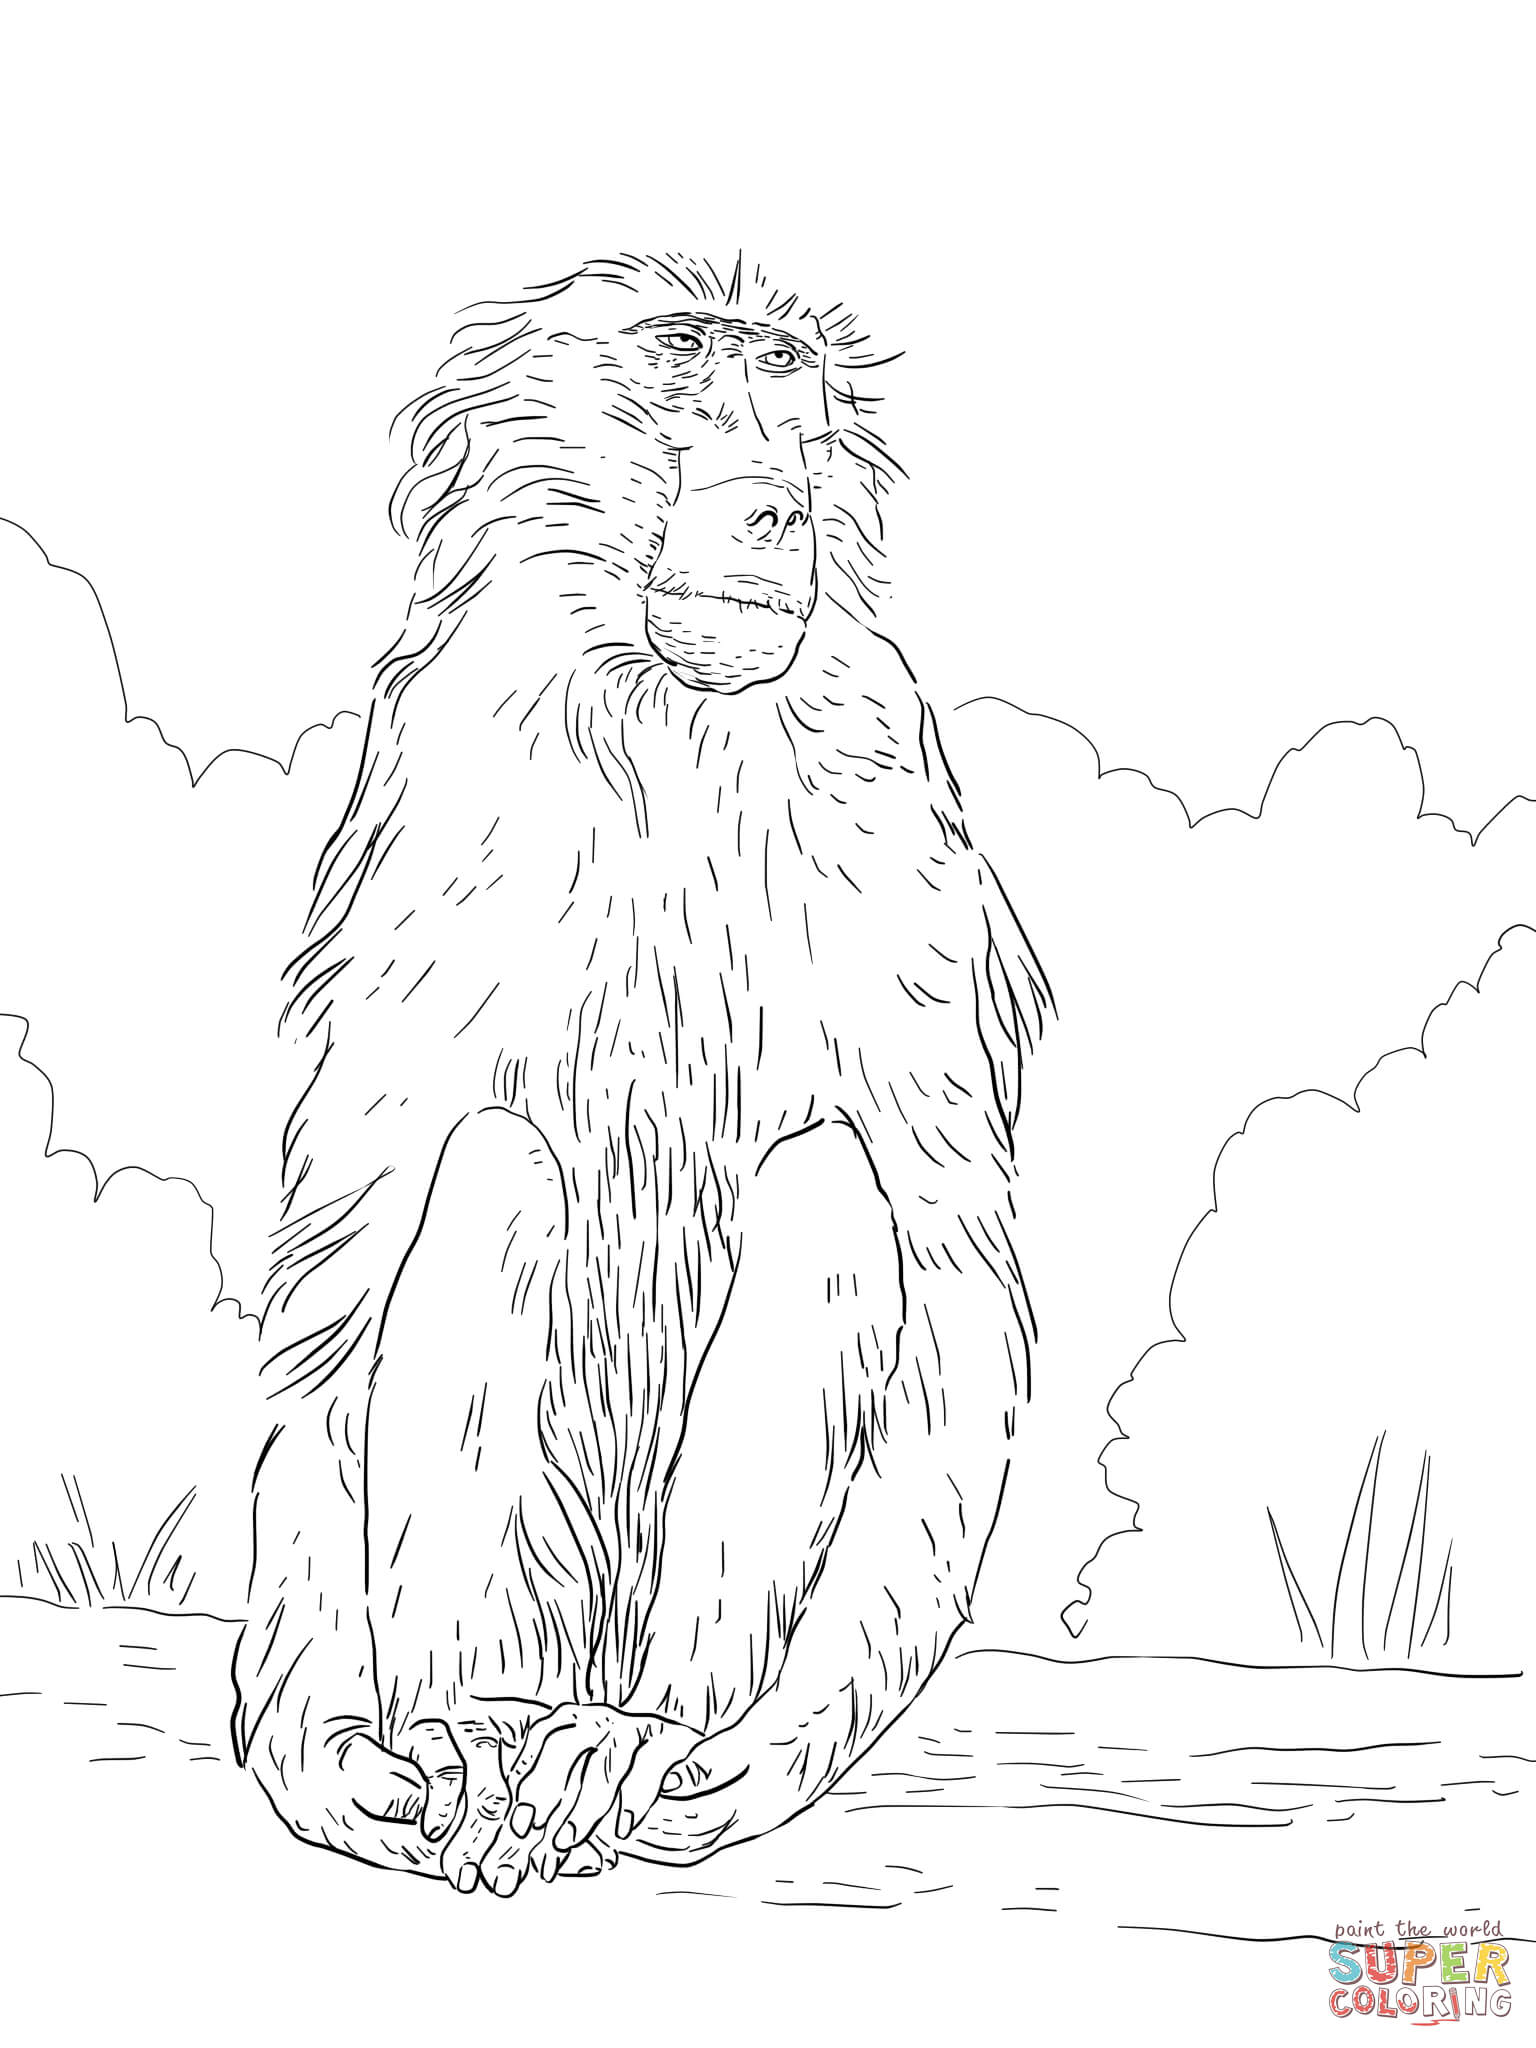 Chacma Baboon Coloring Page